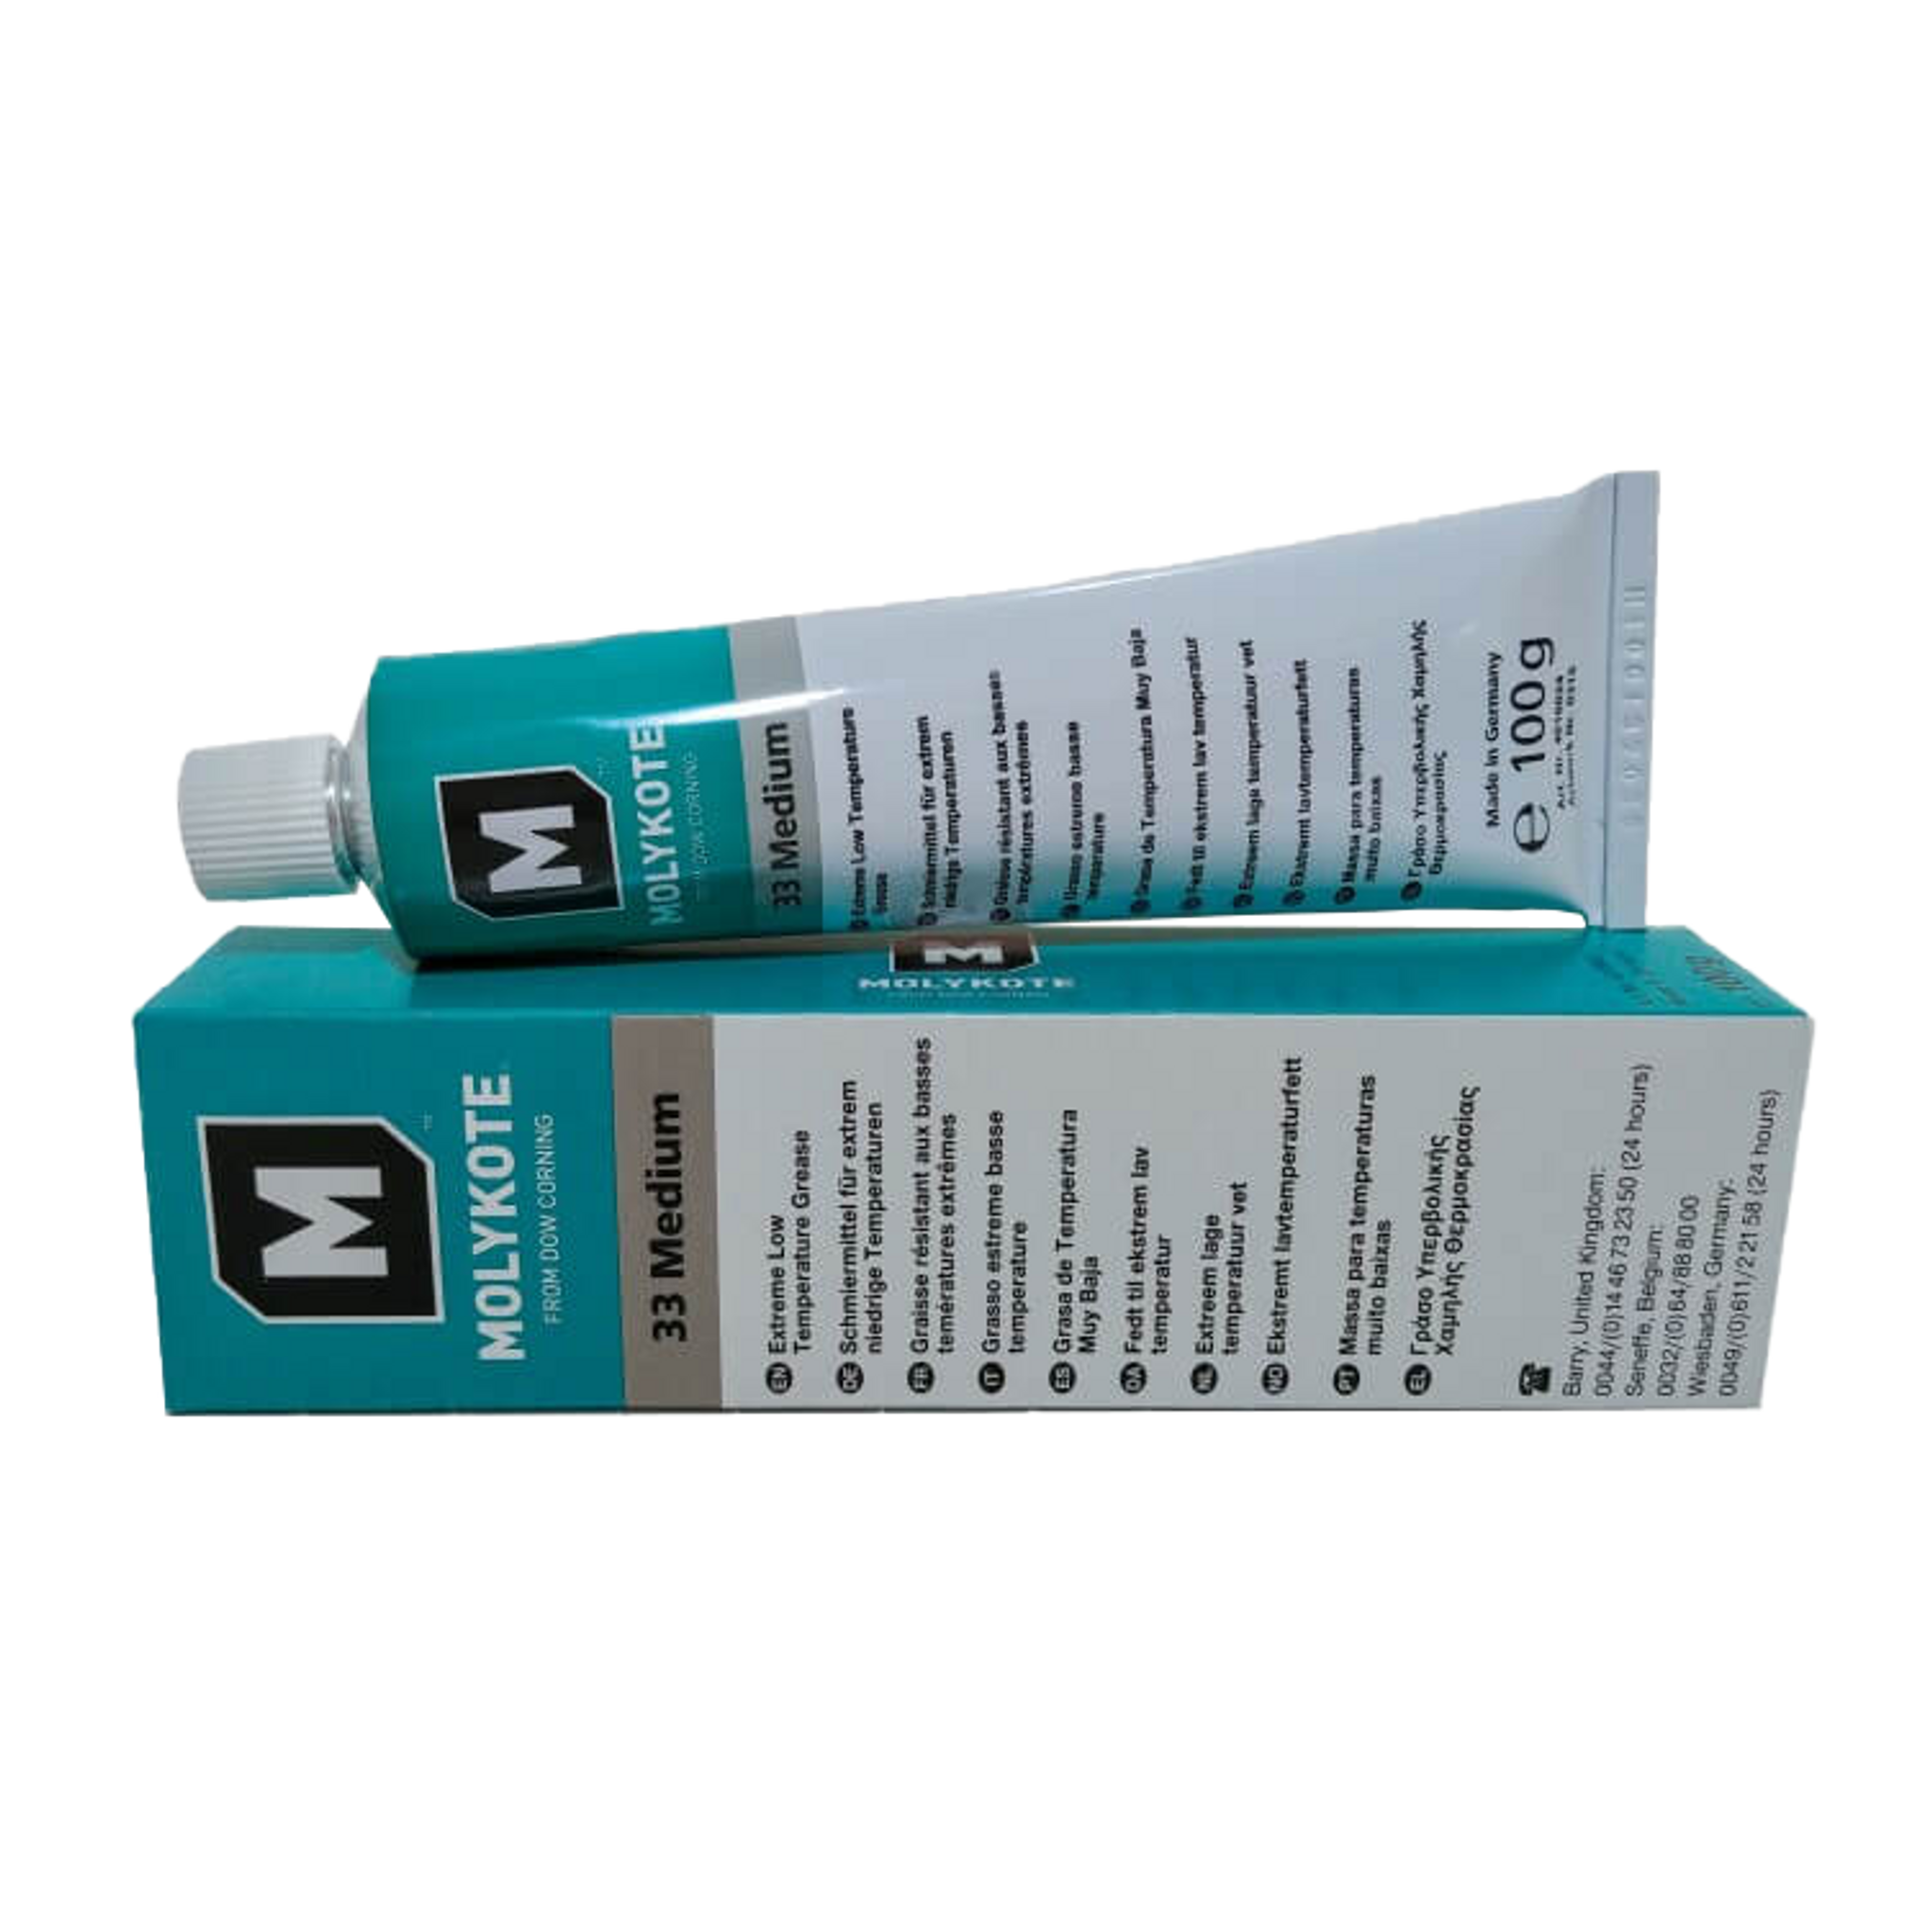 Molykote 33 Medium Grease 100g Quality Bearings Online